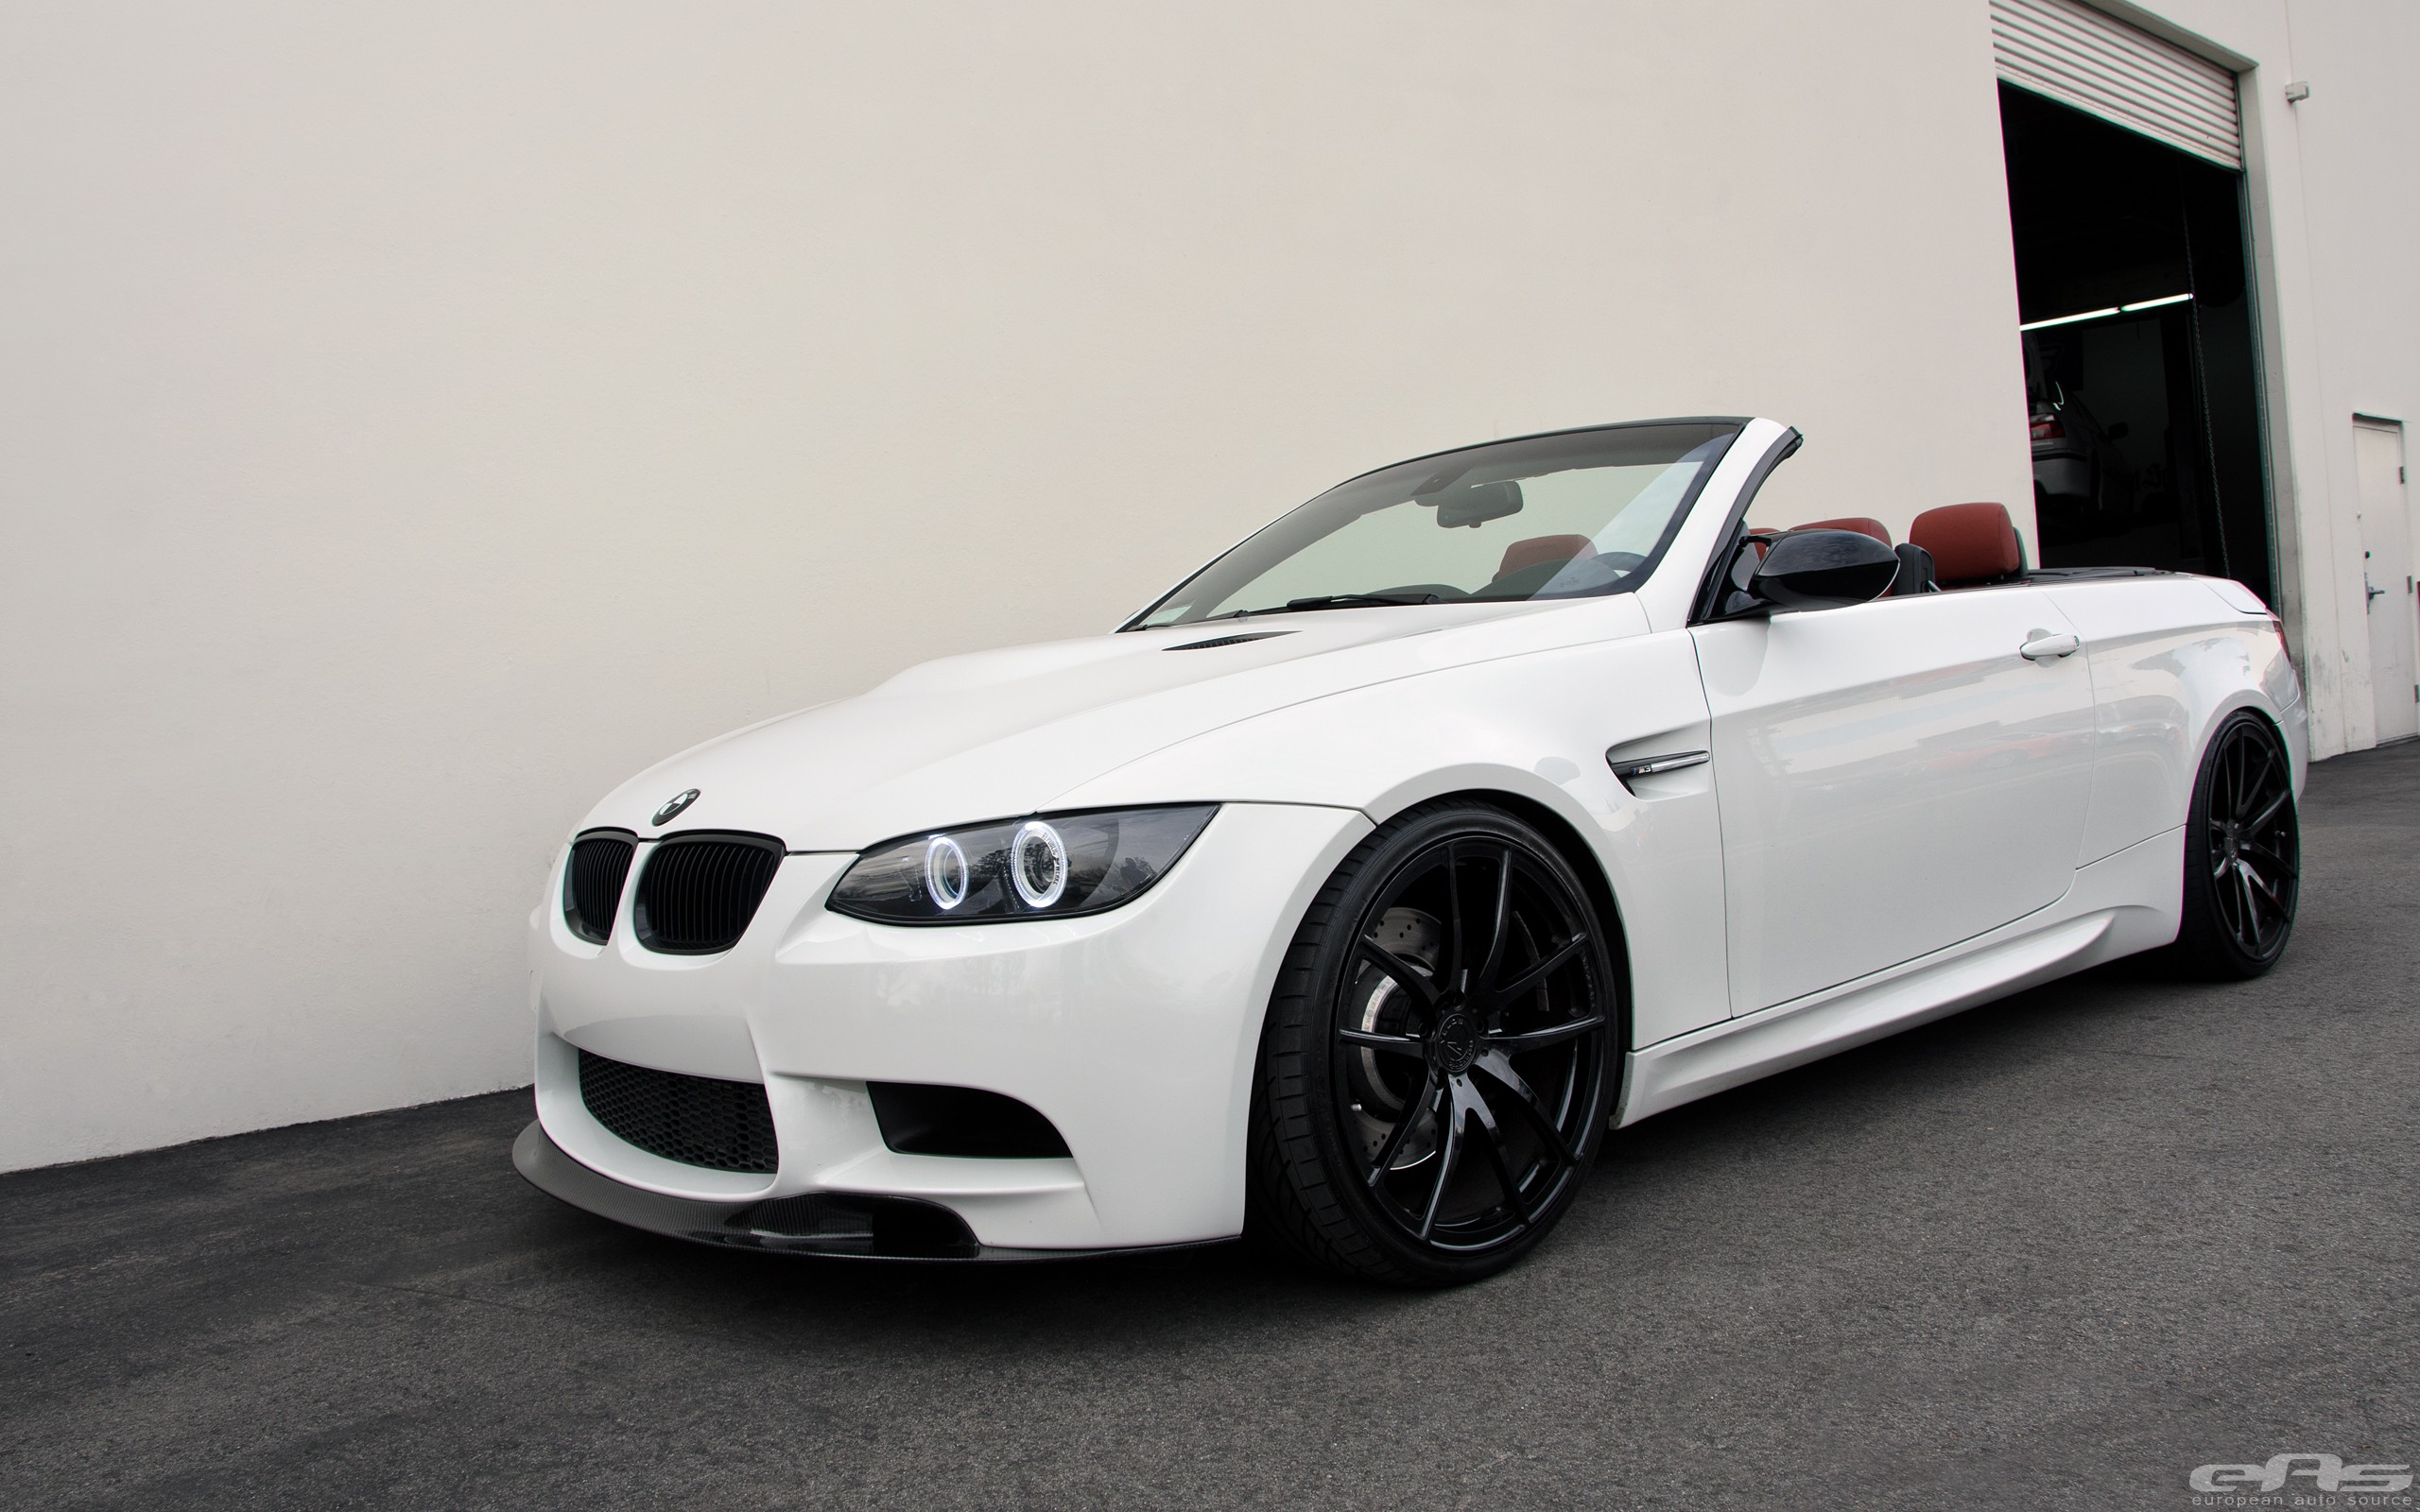 Tuned Bmw E93 M3 Convertible Puts Down 376 Hp At The Wheels On The Dyno Autoevolution